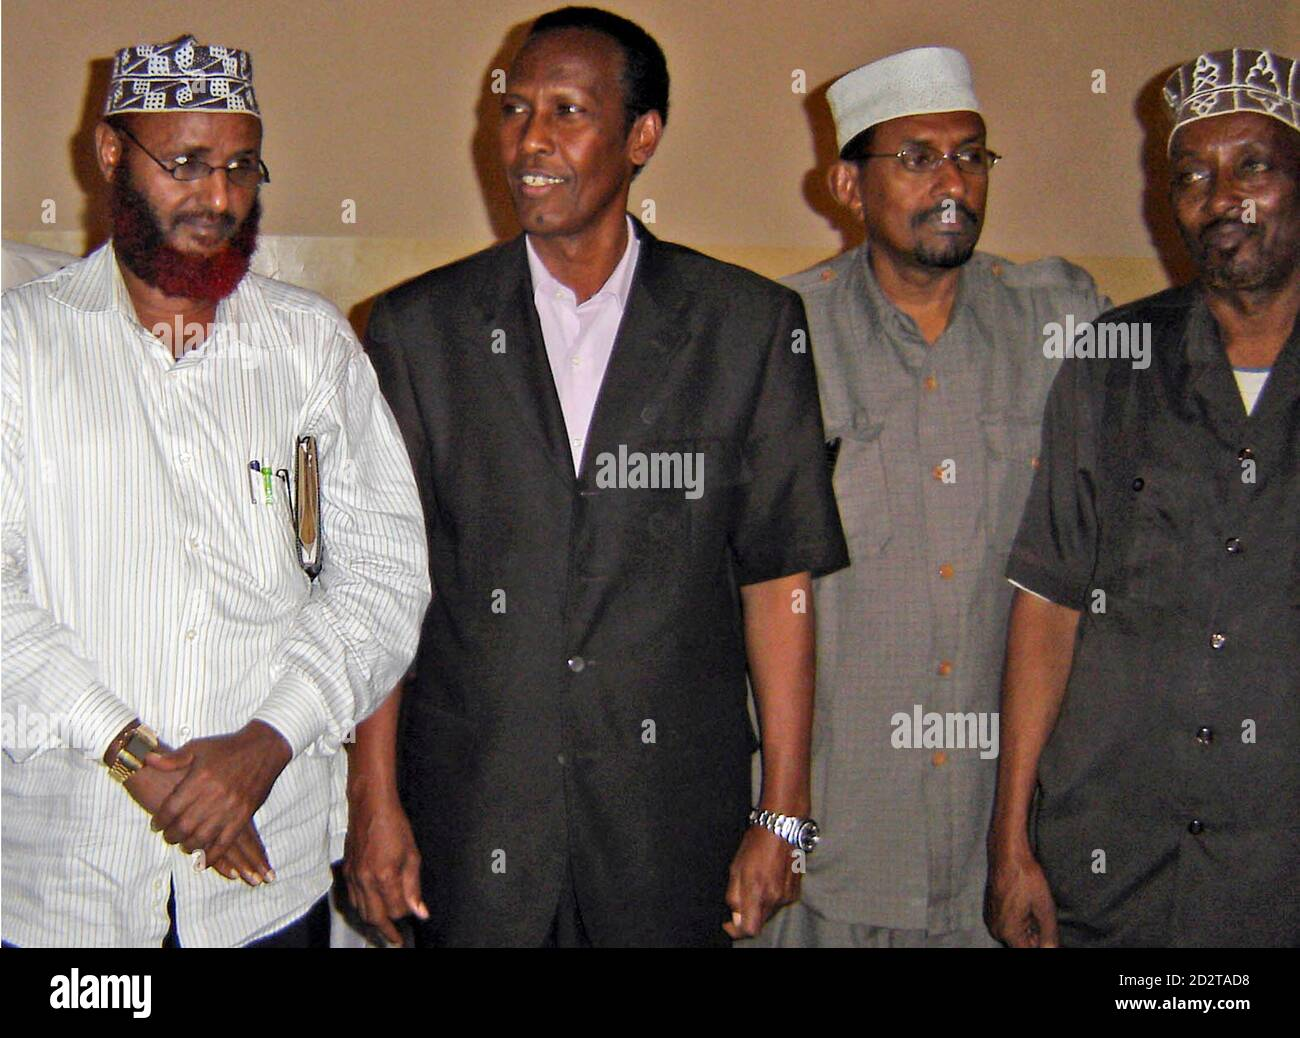 Somalia's Prime Minister Ali Mohamed Gedi (2nd L) poses for a photograph with Hawiye clan elders Mohamed Hasan Had (L), Ade Gabo (2nd R) and Ahmed Diriye (R) at the former National Security headquarters in Mogadishu October 8, 2007. Gedi has reached a truce with Mogadishu's dominant clan, some of whose fighters had supported Islamist-led insurgents in battles with government troops and Ethiopian forces earlier this year. Picture taken October 8, 2007. REUTERS/Feisal Omar (SOMALIA) Stock Photo